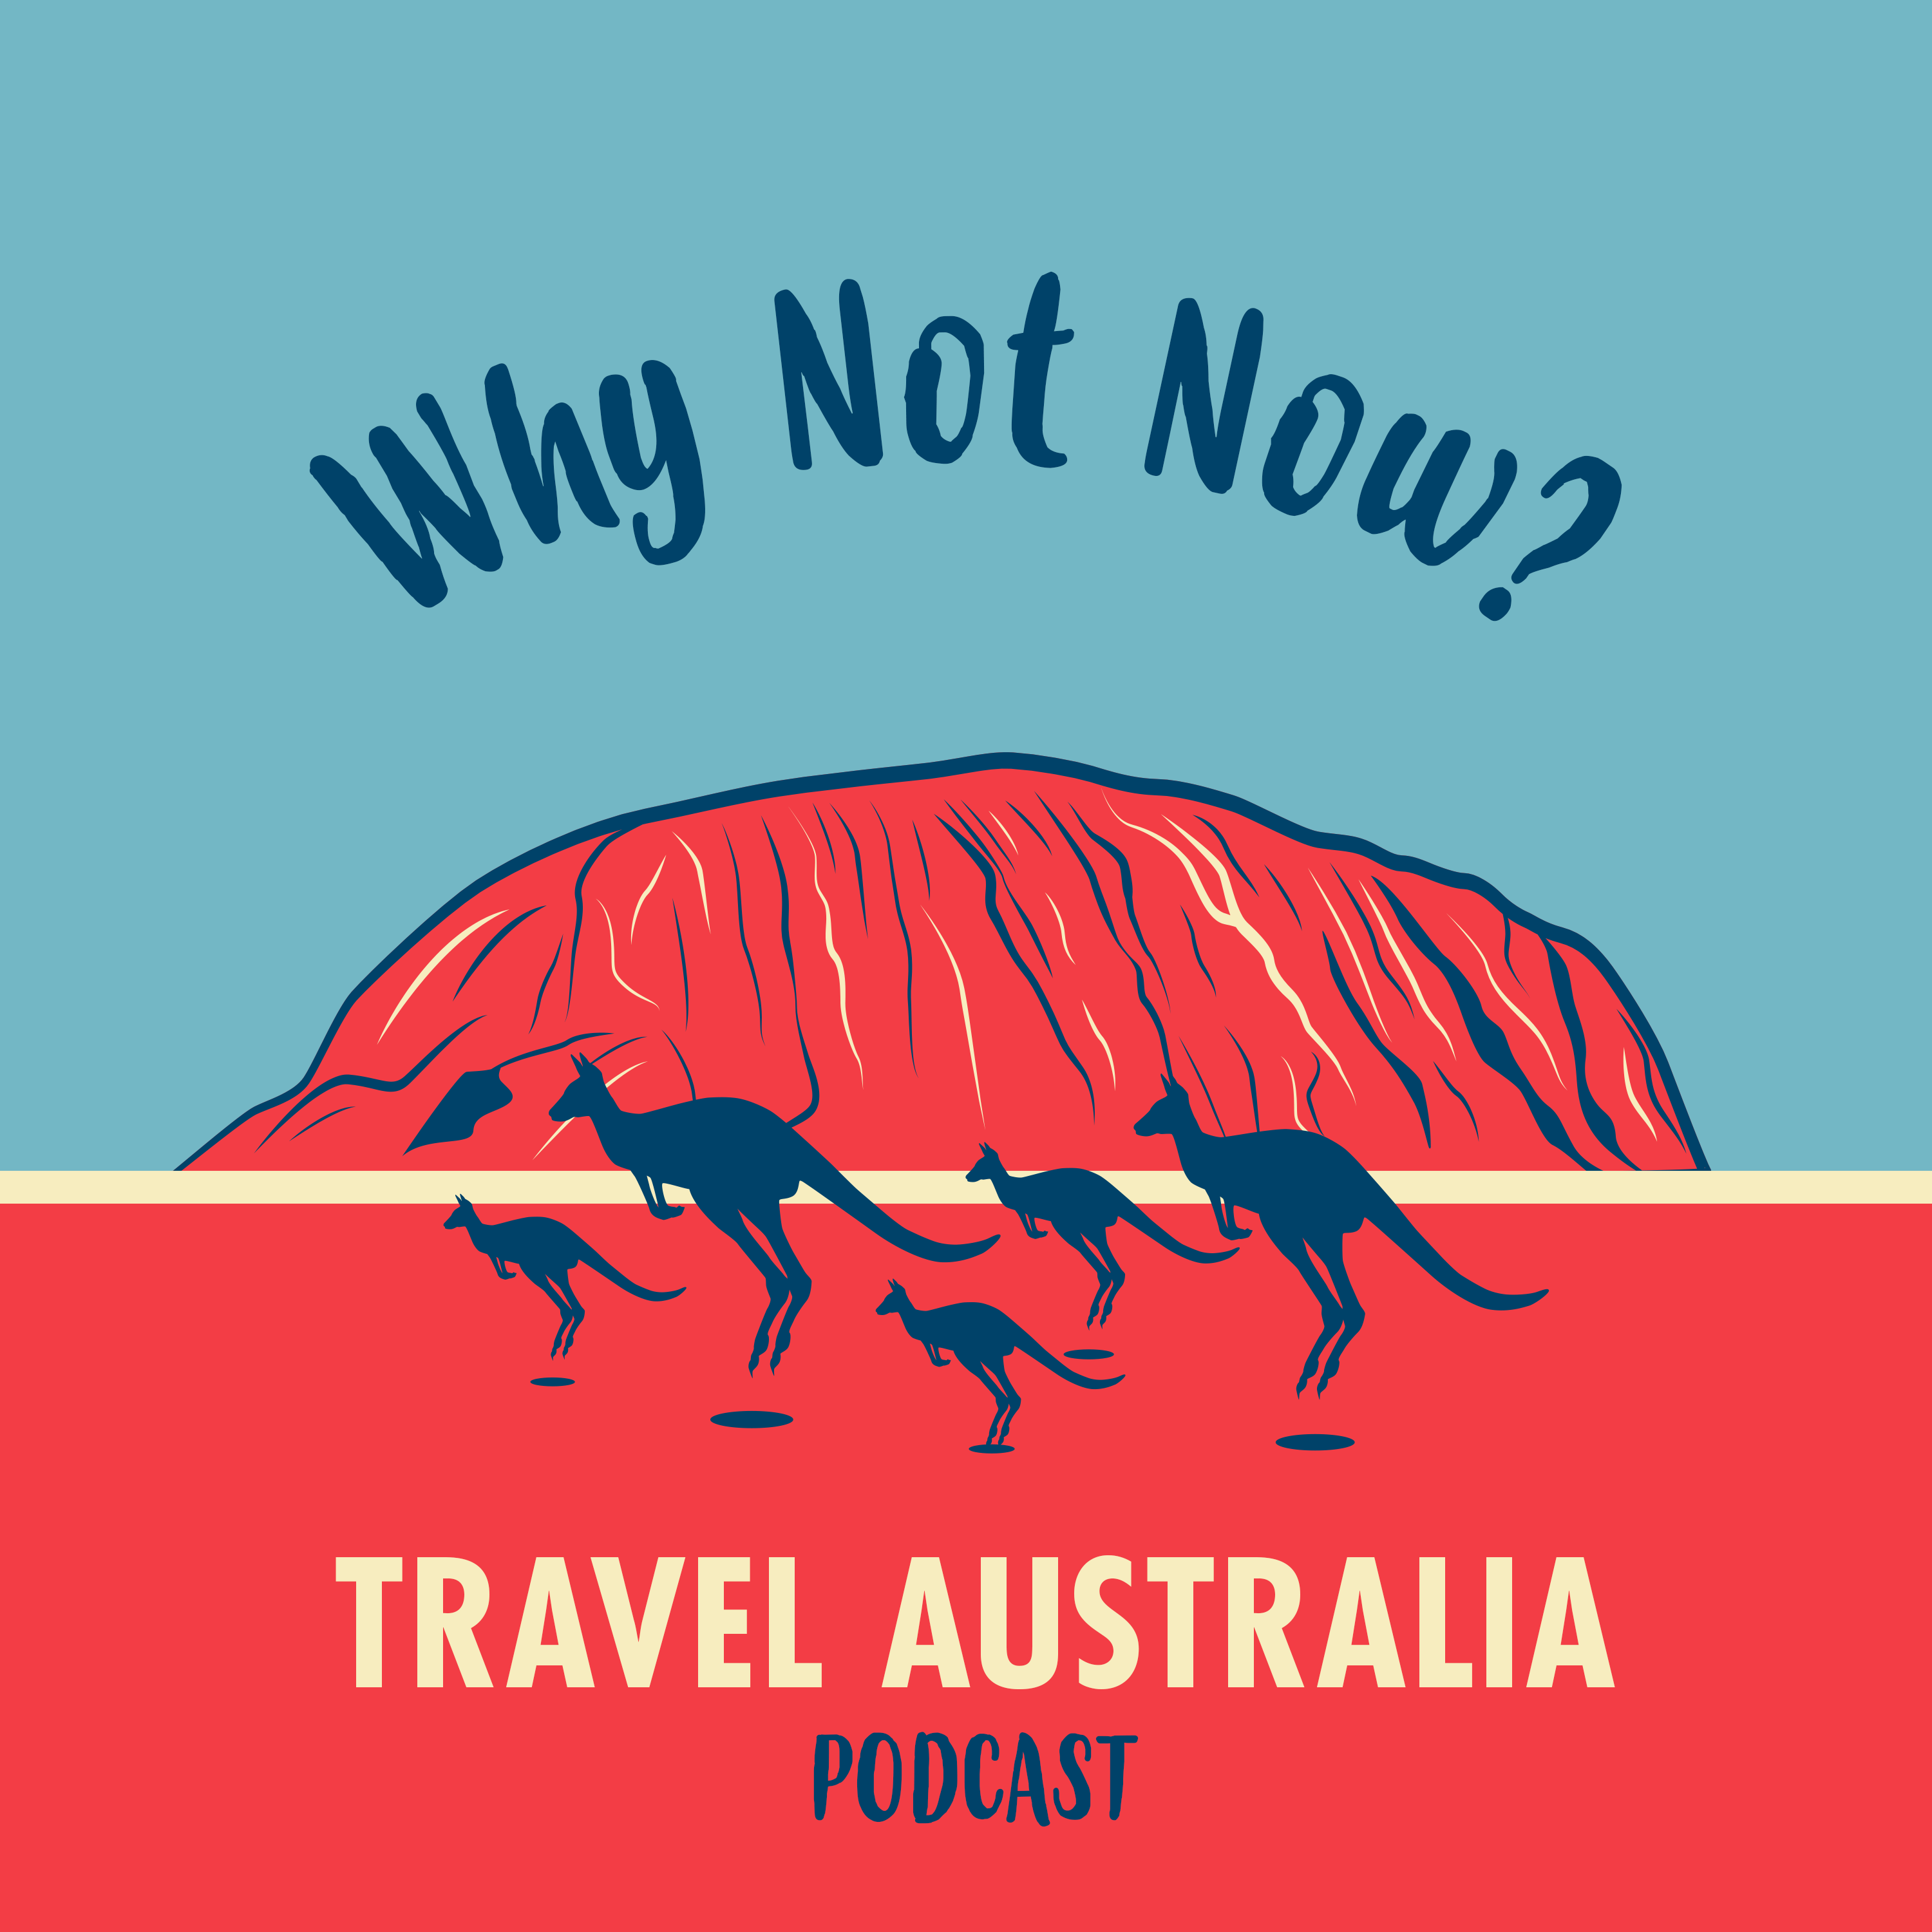 Why Not Now? Travel Australia Podcast show art